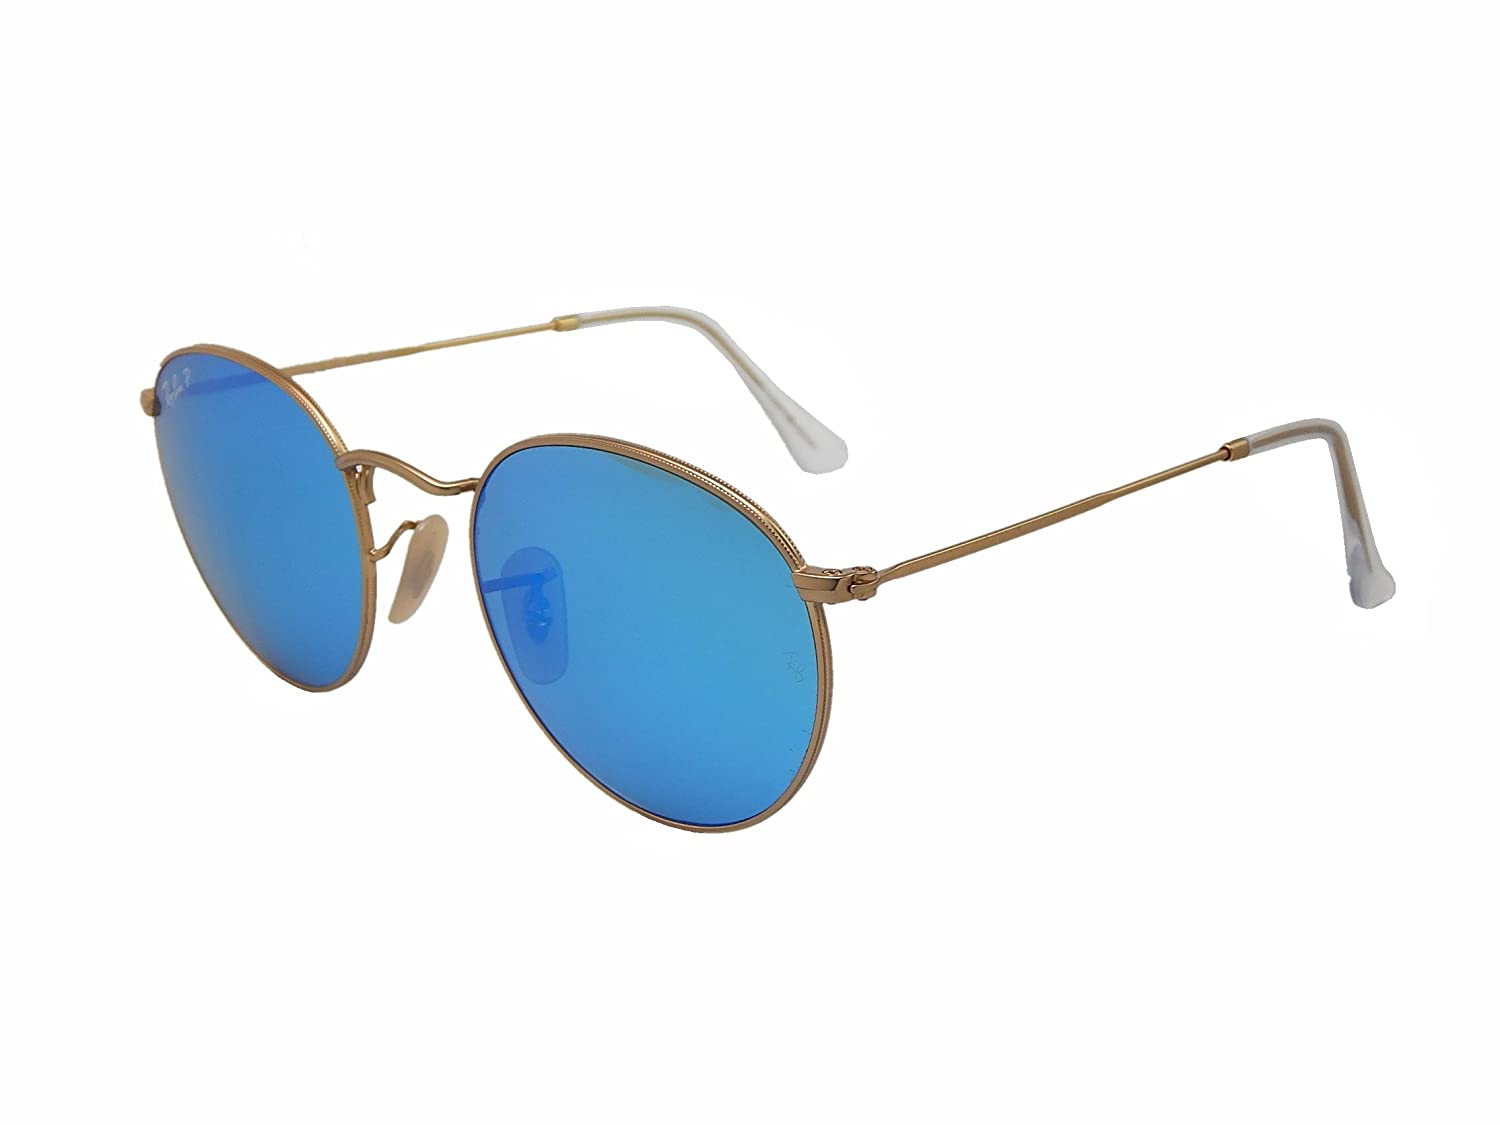 501e1a6ca9 Amazon.com  Ray Ban Round Metal RB3447 112 4L Gold Blue mirror 50mm  Polarized Sunglasses  Clothing